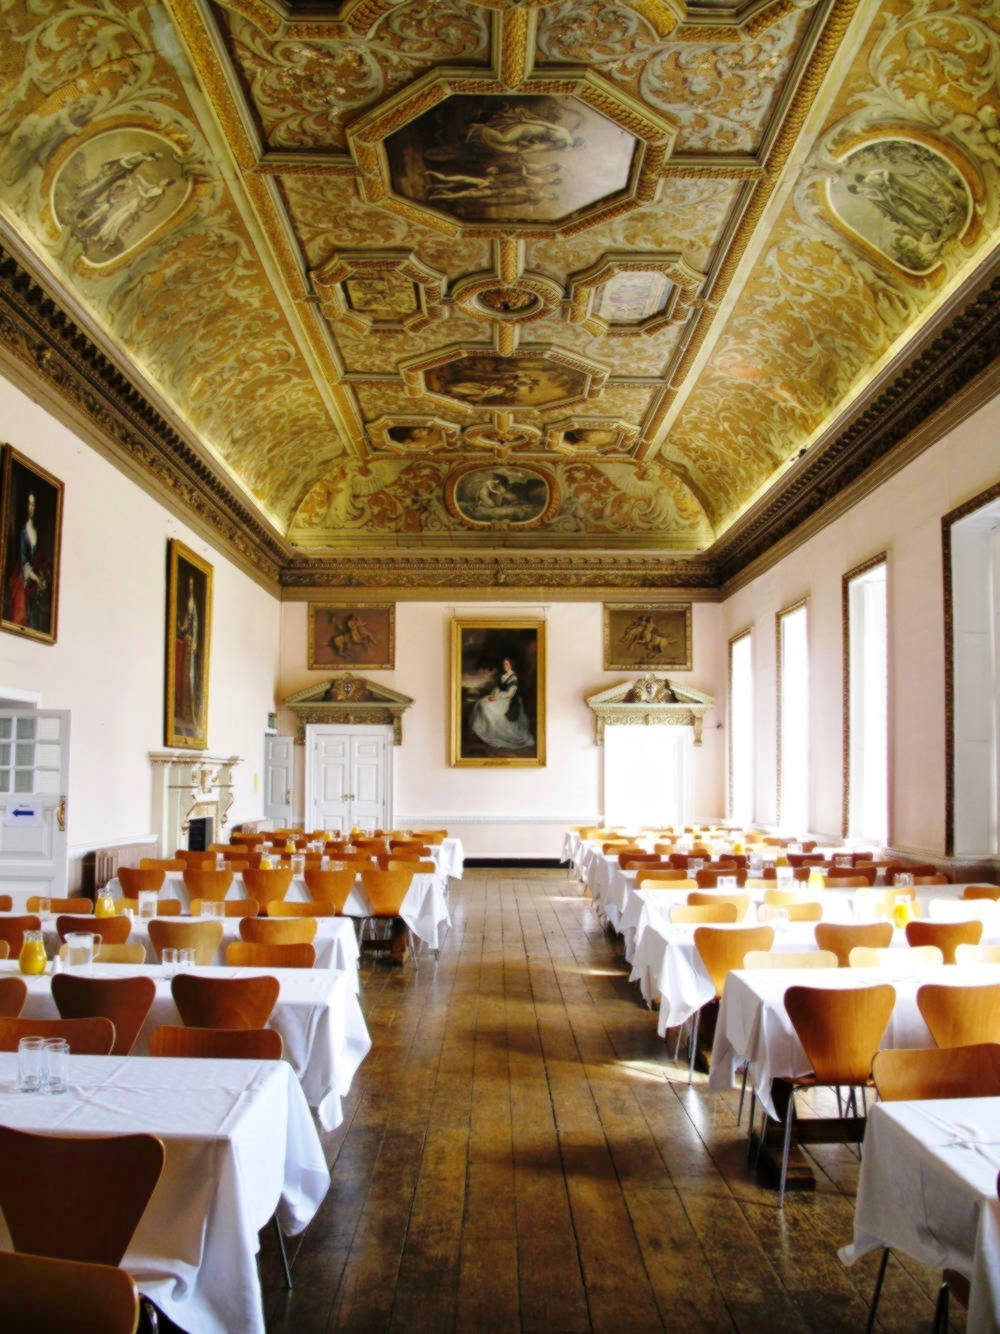 Stowe School Dining Hall. Credit Karen Mallonee, flickr